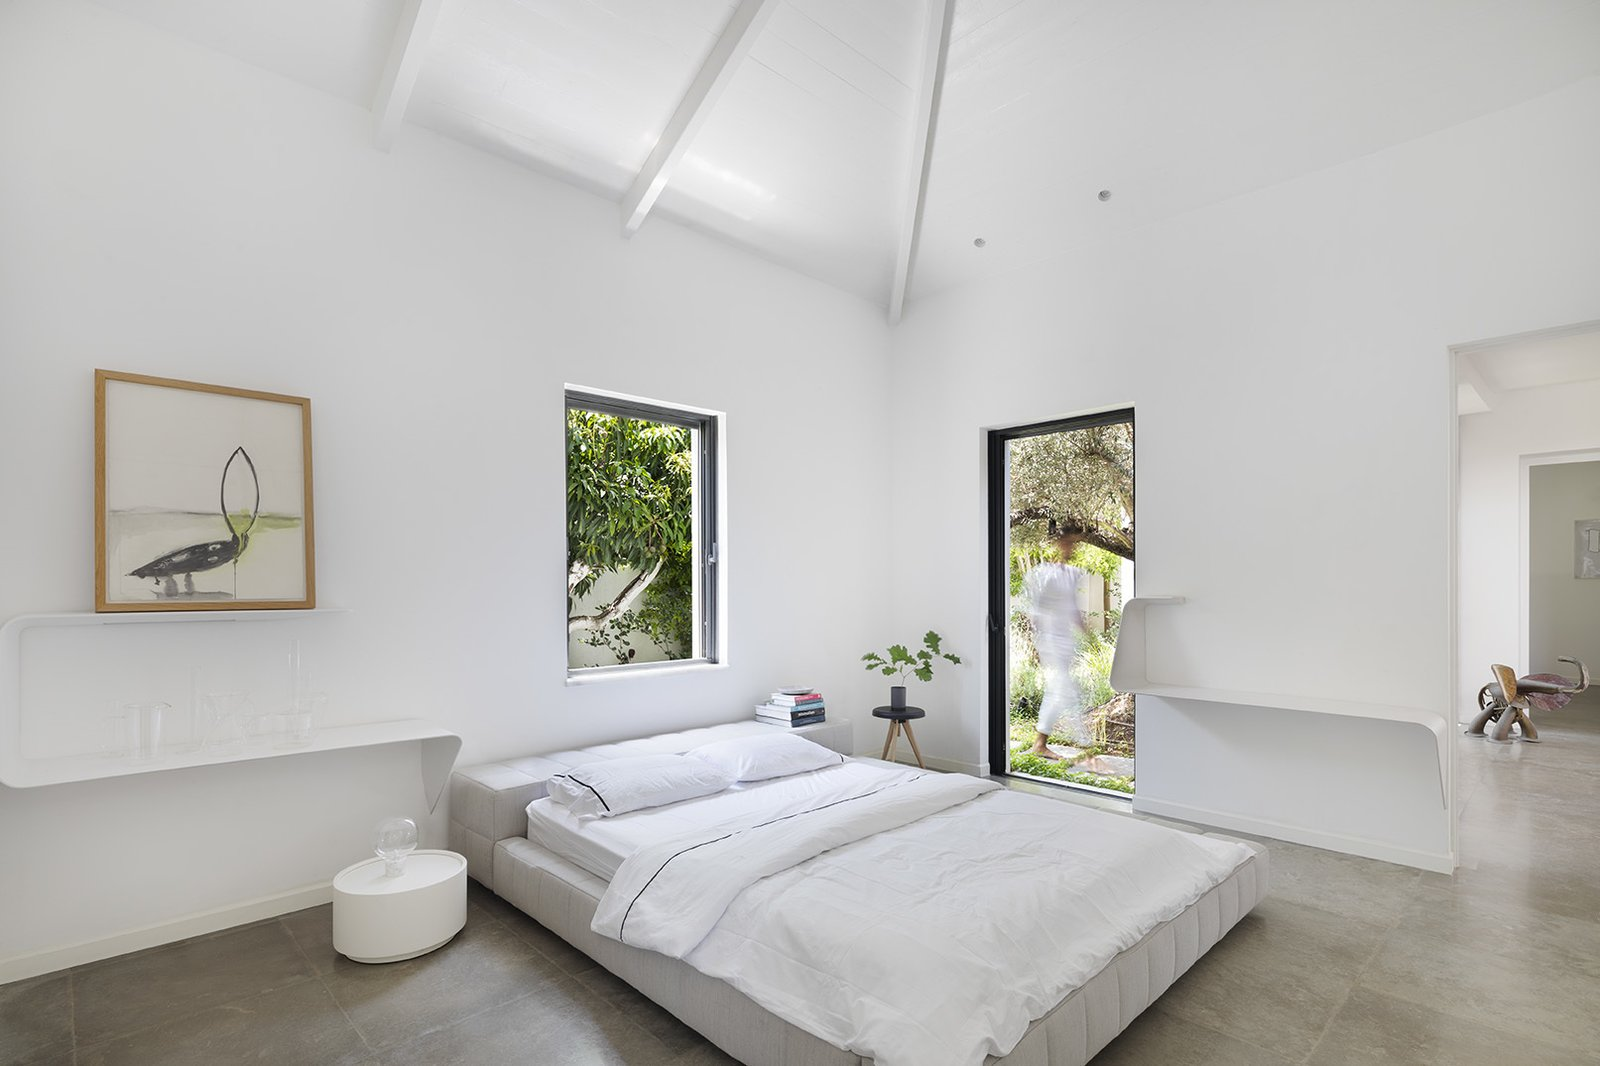 Modernist Farmhouse bedroom